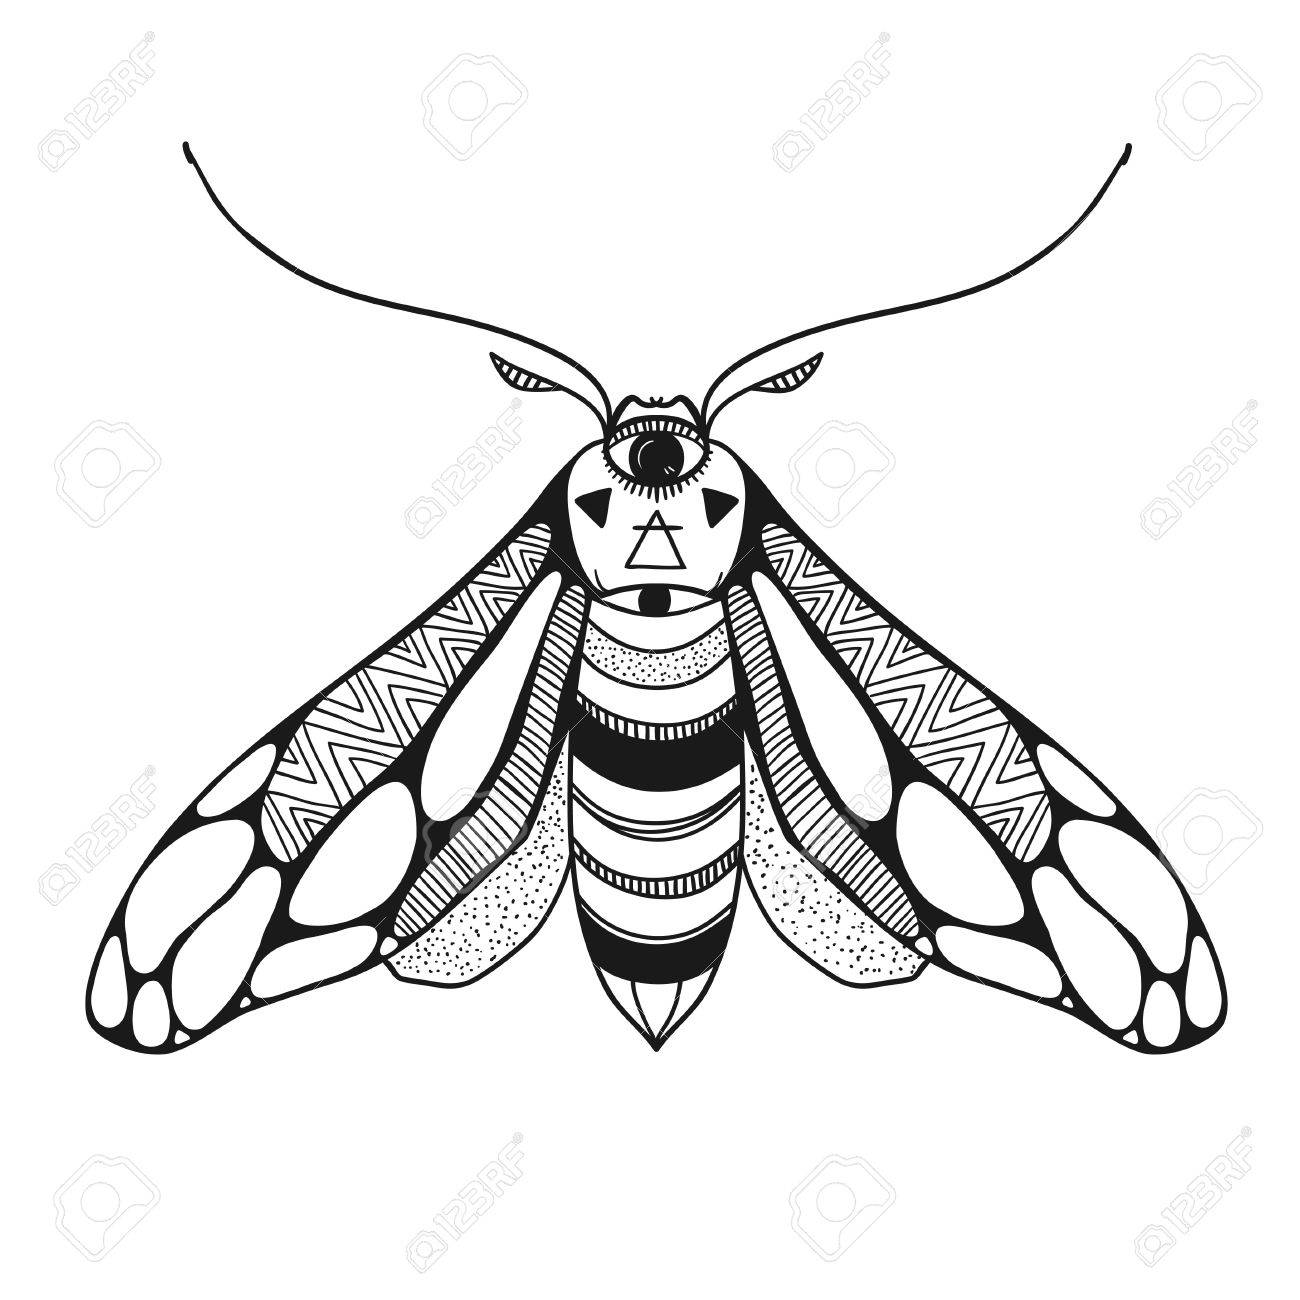 1300x1300 Vector Illustration Of A Moth With Ornamental Wings, Decorative